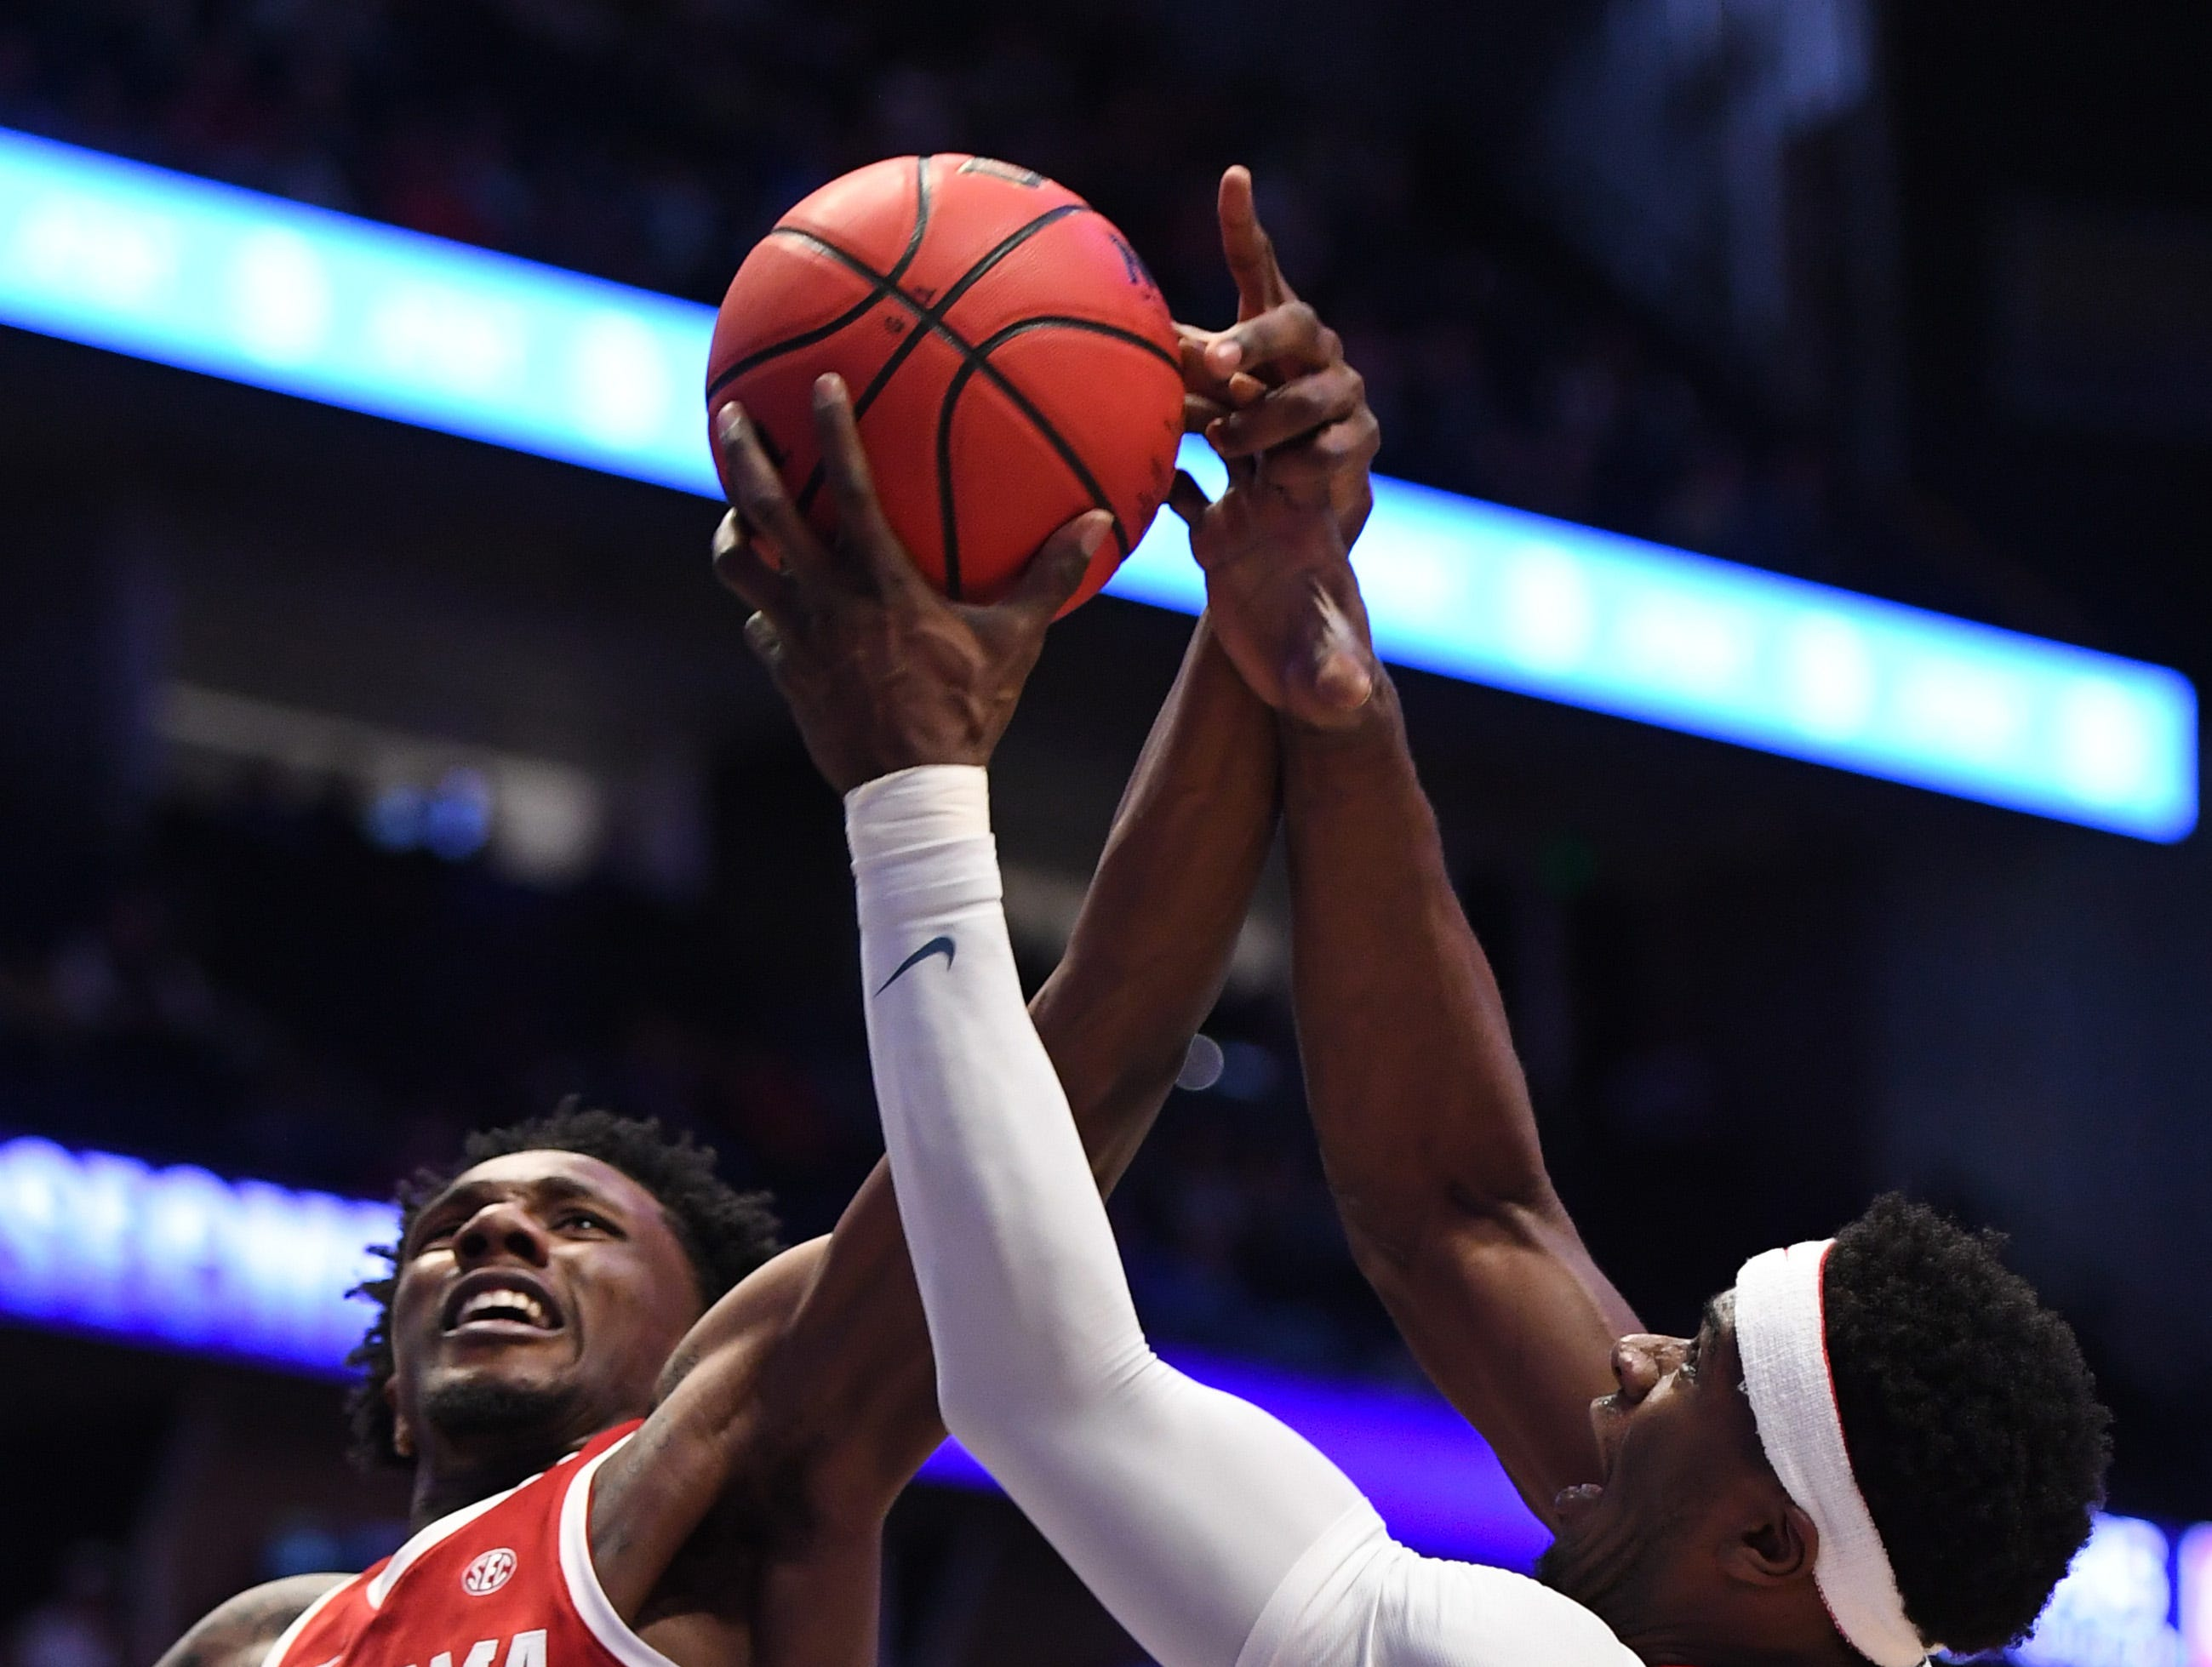 Mar 14, 2019; Nashville, TN, USA; Alabama Crimson Tide guard Tevin Mack (34) works for a rebound against Mississippi Rebels guard Terence Davis (3) during the first half of the SEC conference tournament at Bridgestone Arena. Mandatory Credit: Christopher Hanewinckel-USA TODAY Sports